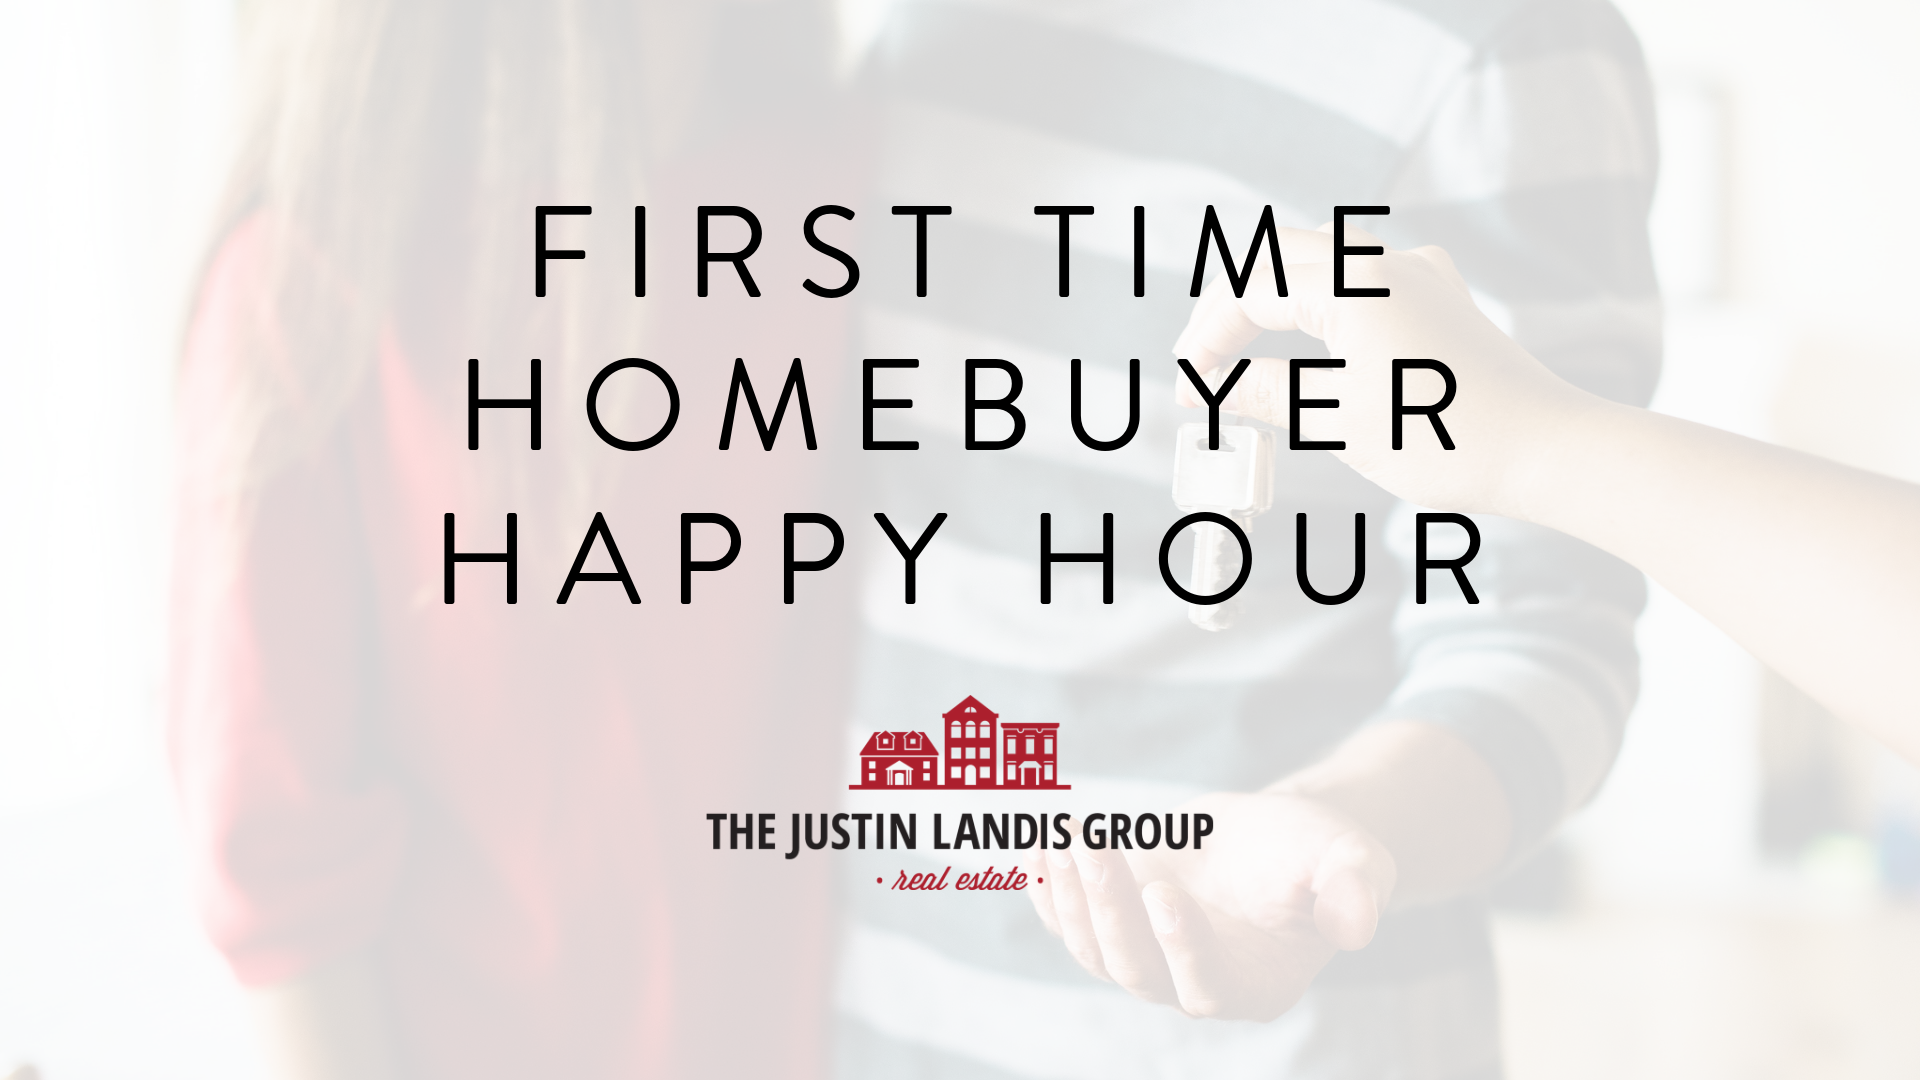 First Time Homebuyer Happy Hour Event